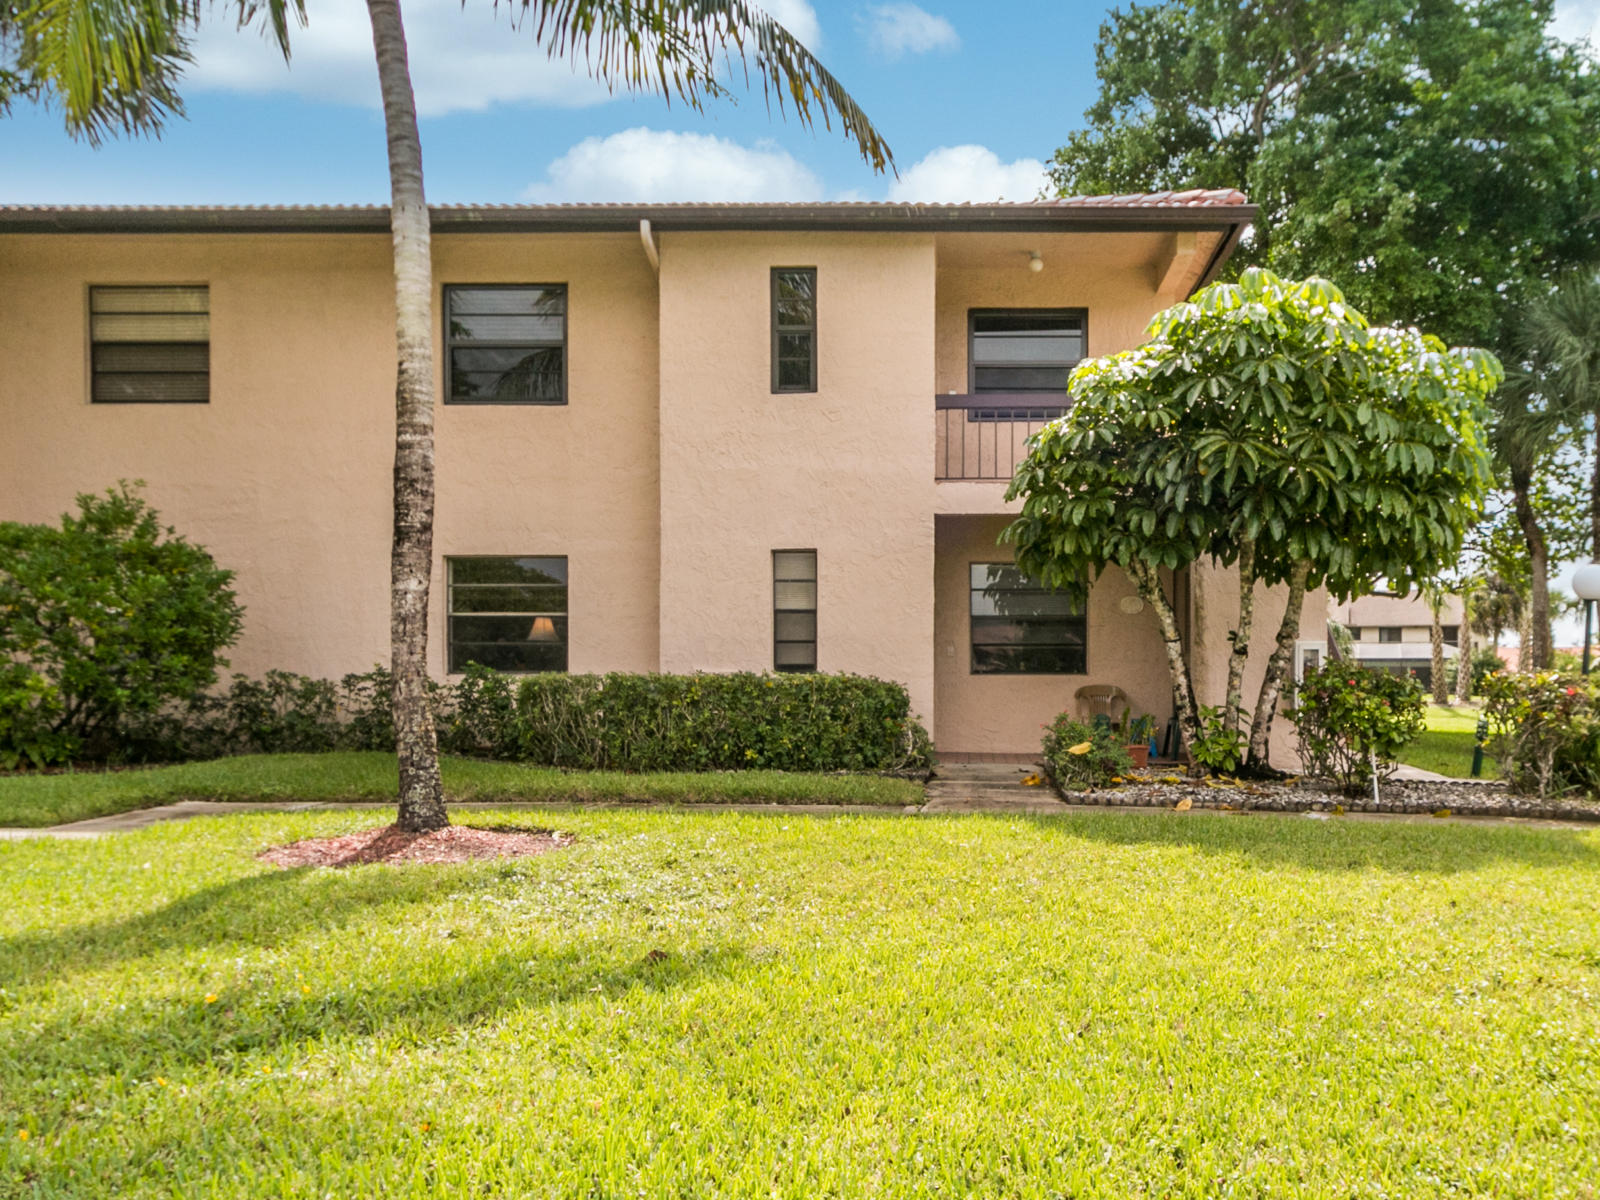 Photo of 9270 Vista Del Lago #27-H, Boca Raton, FL 33428